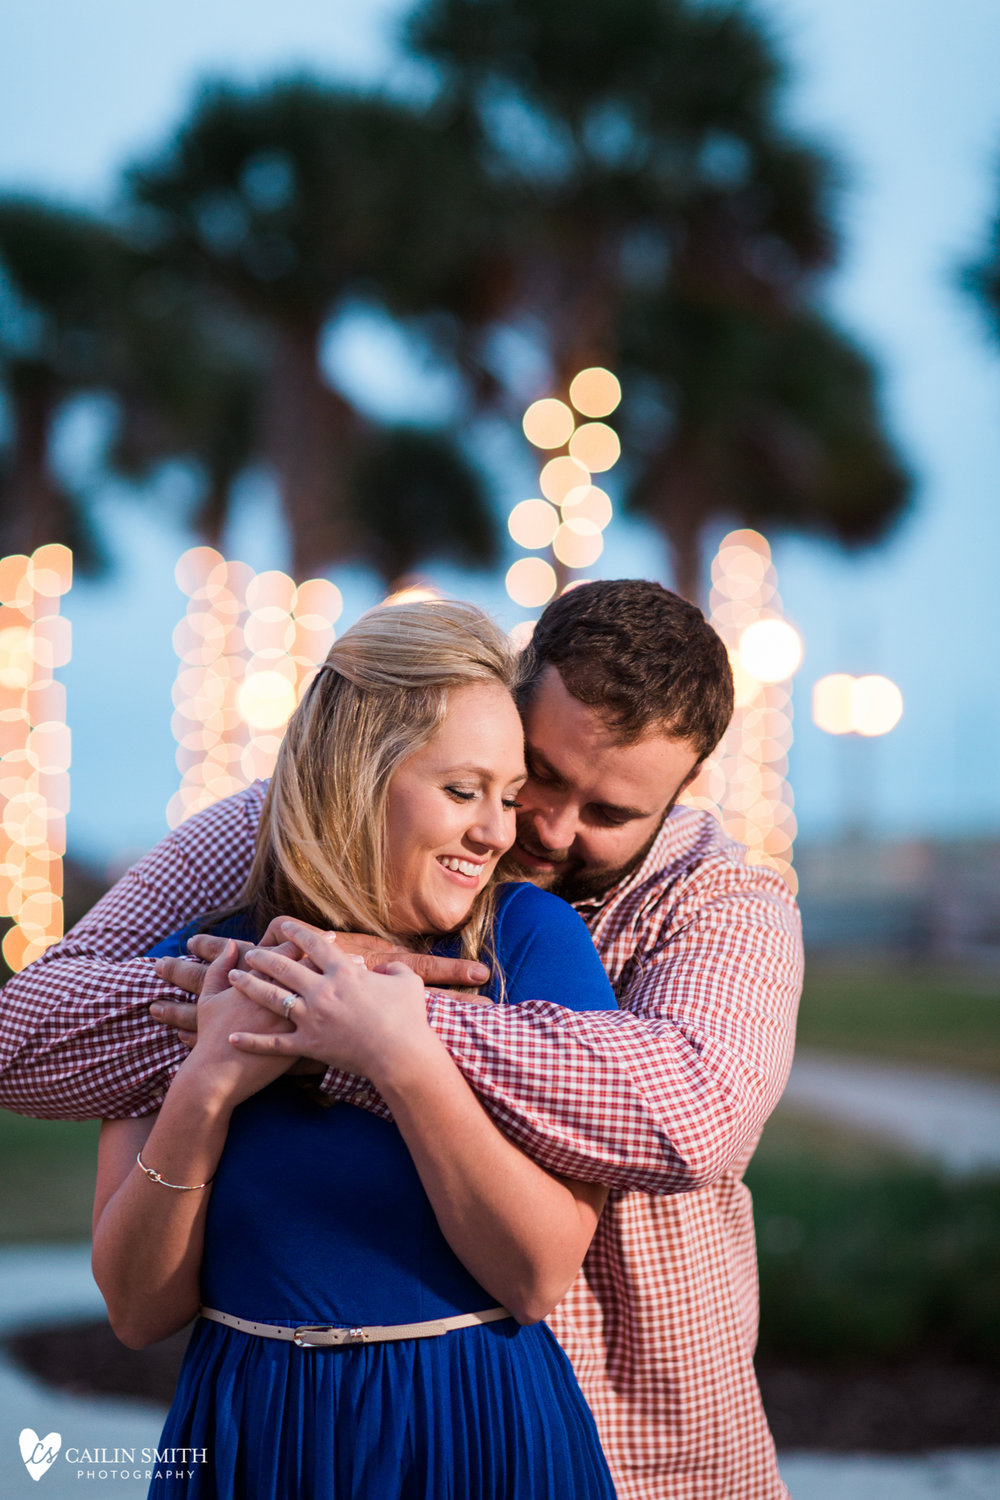 Shari_Brent_St_Augustine_Engagement_Photography_018.jpg